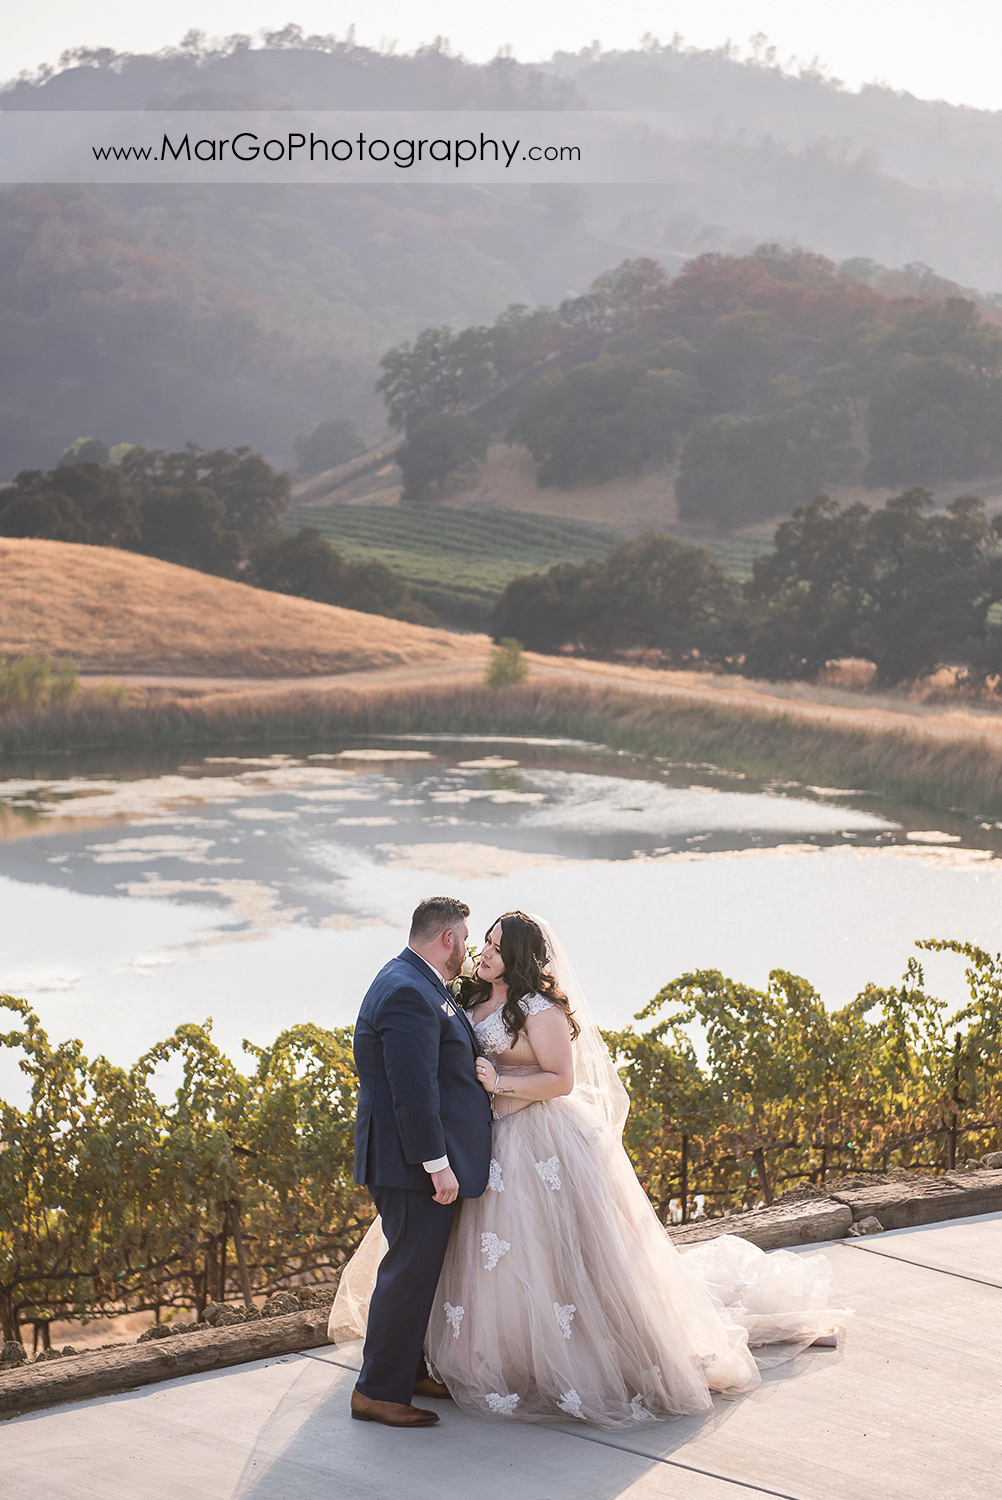 bride and groom looking at each other with pond and hills view in background at Taber Ranch Vineyards